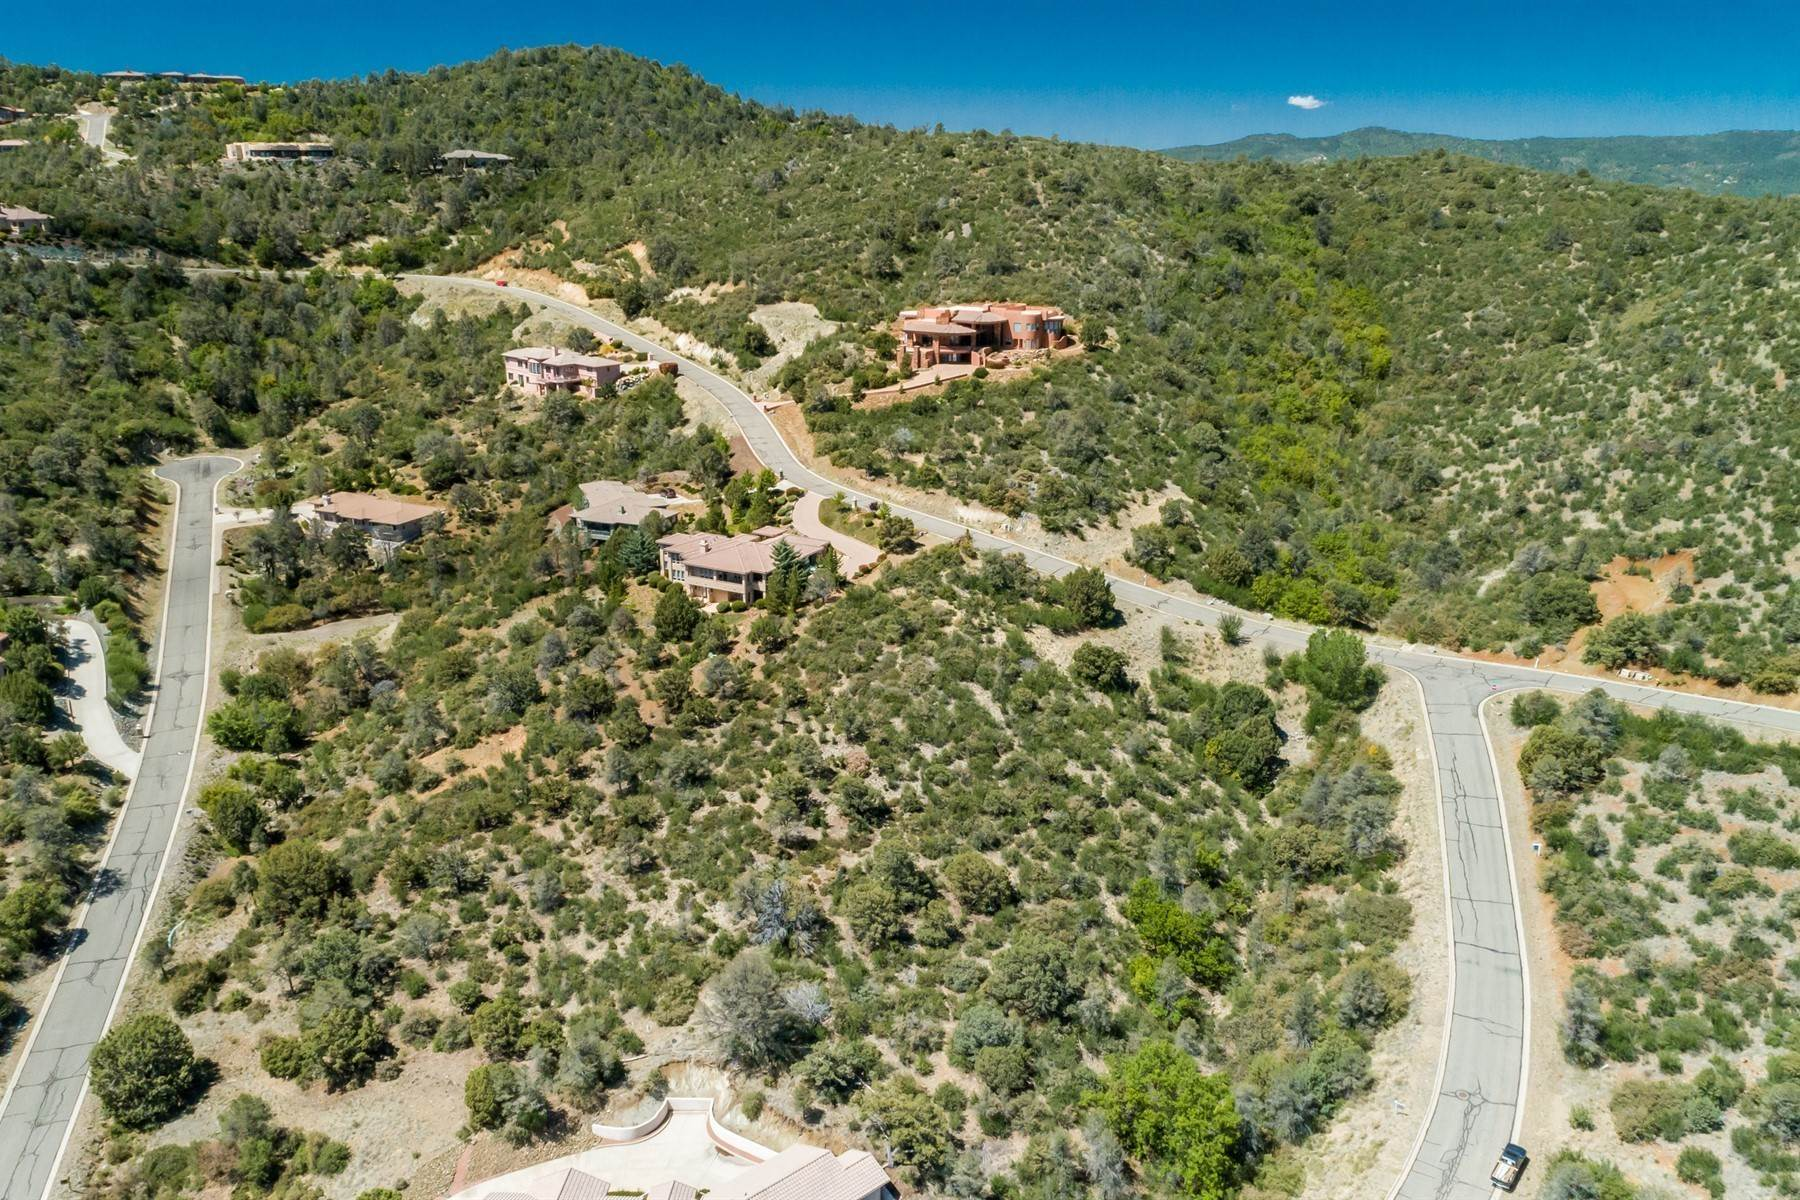 Land for Sale at Beautiful Build Site With Incredible Views 676 W Lee Boulevard Prescott, Arizona 86303 United States